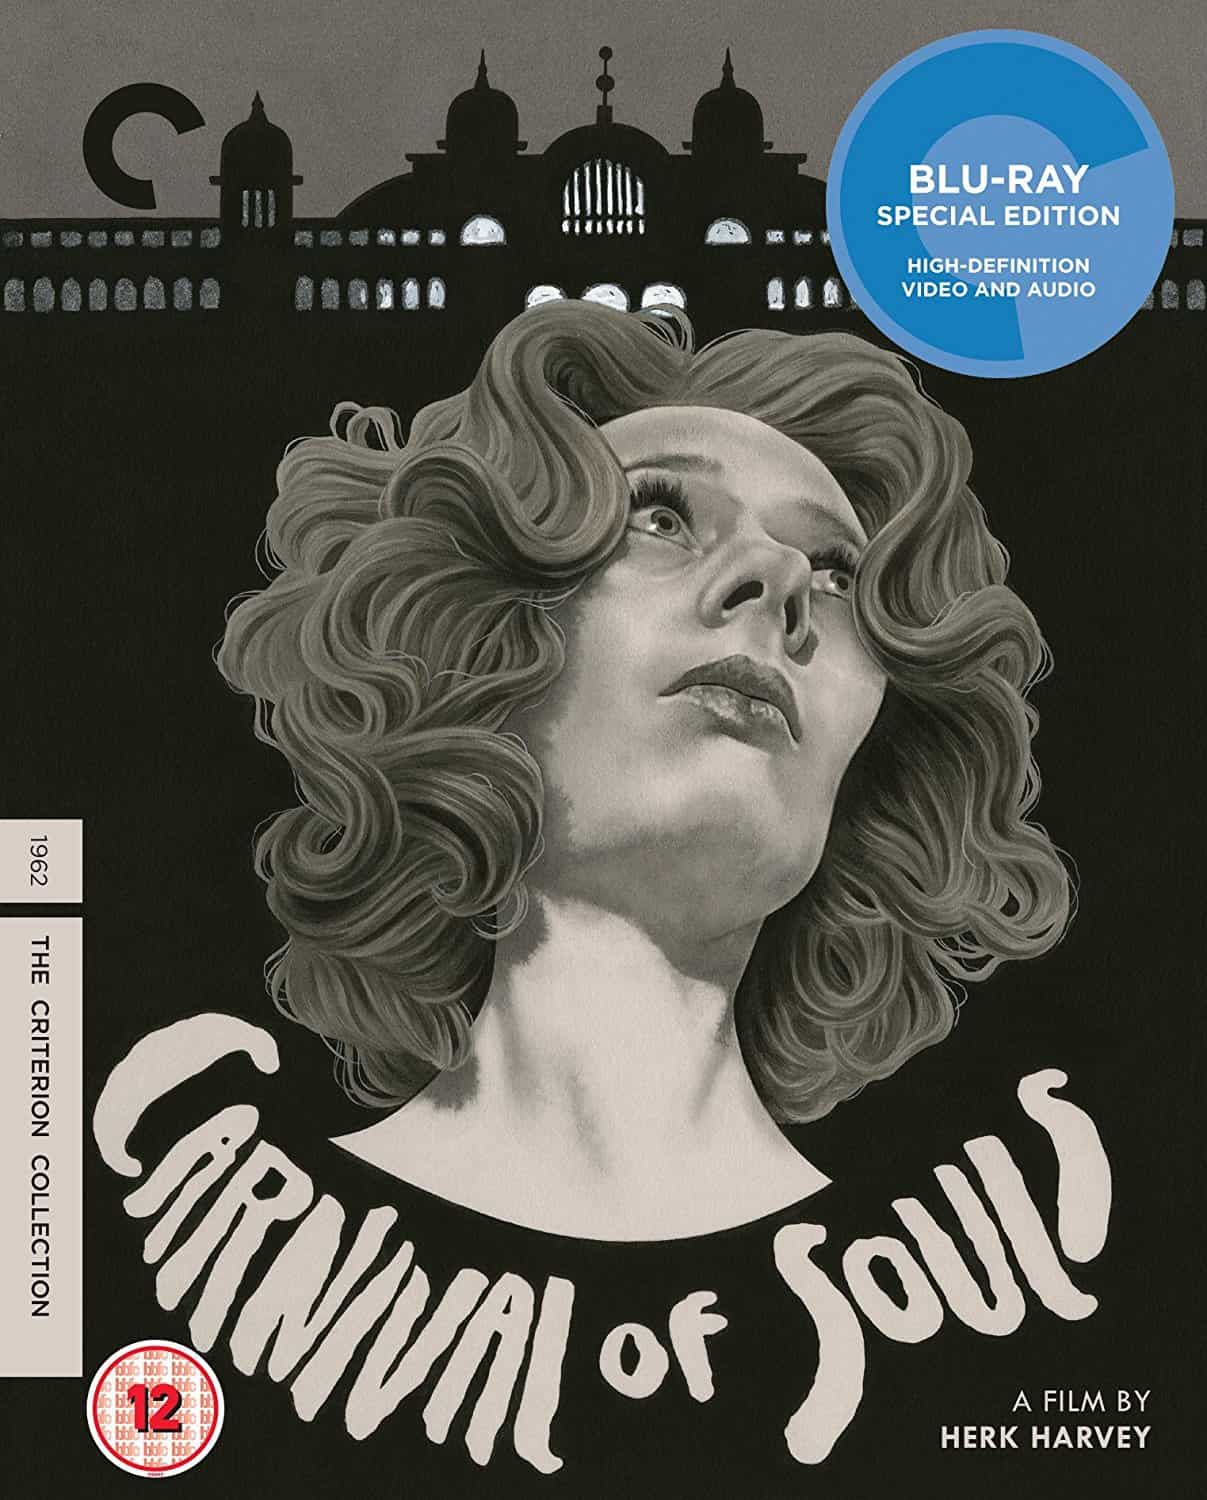 Carnival of souls criterion collection blu ray review blueprint director herk harvey screenplay john clifford starring candace hilligoss frances feist sidney berger art ellison stan levitt country usa malvernweather Images